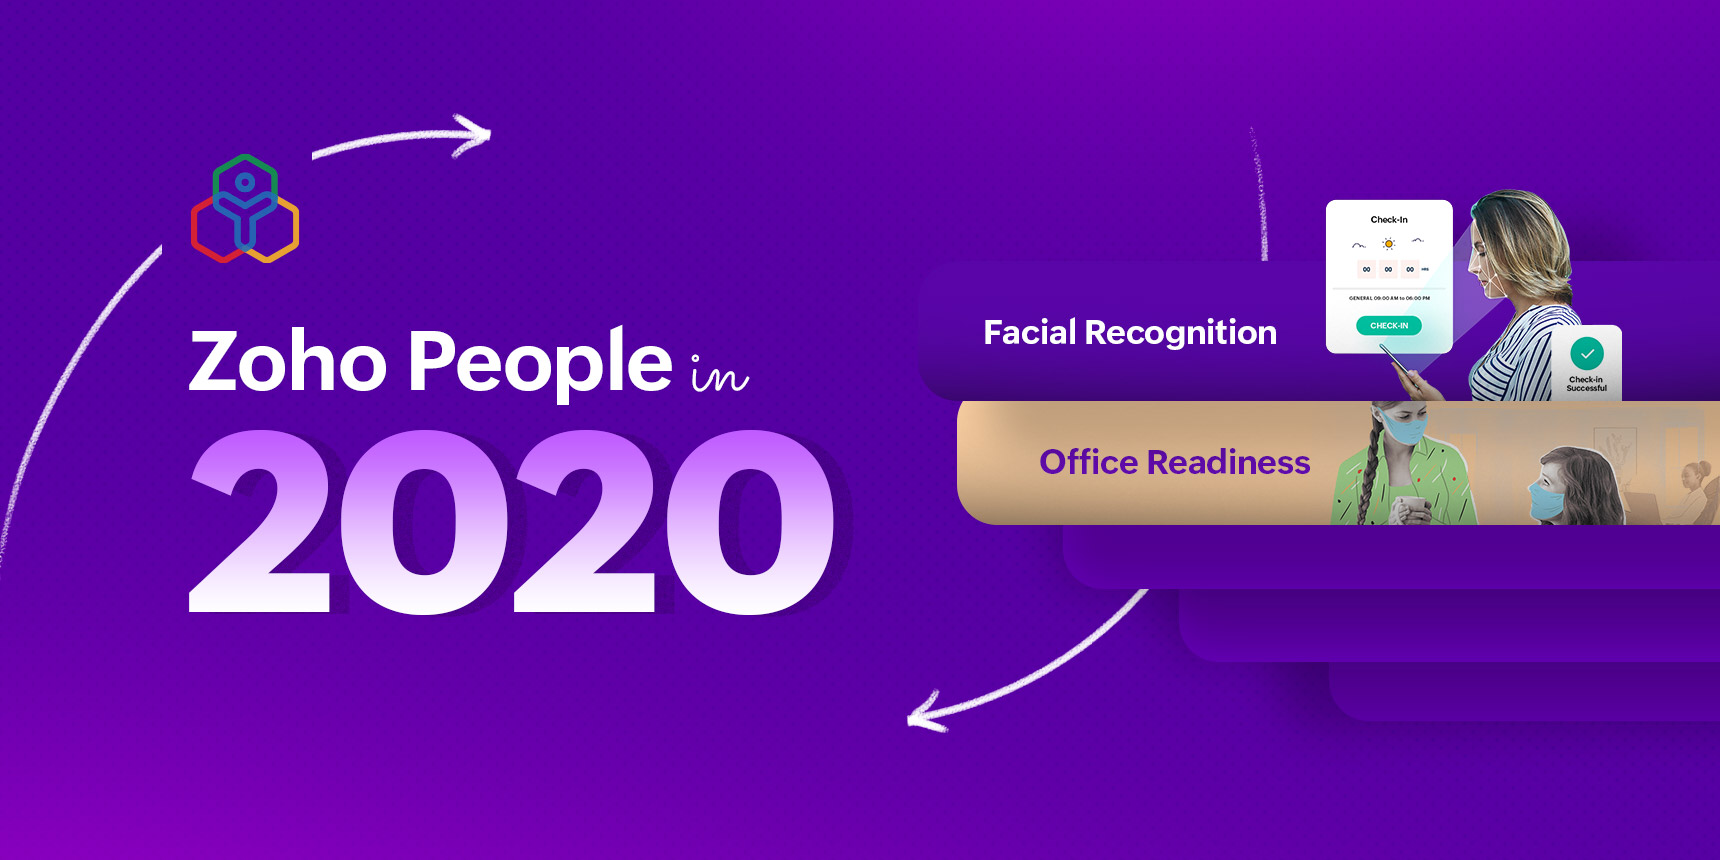 A look at Zoho People in 2020